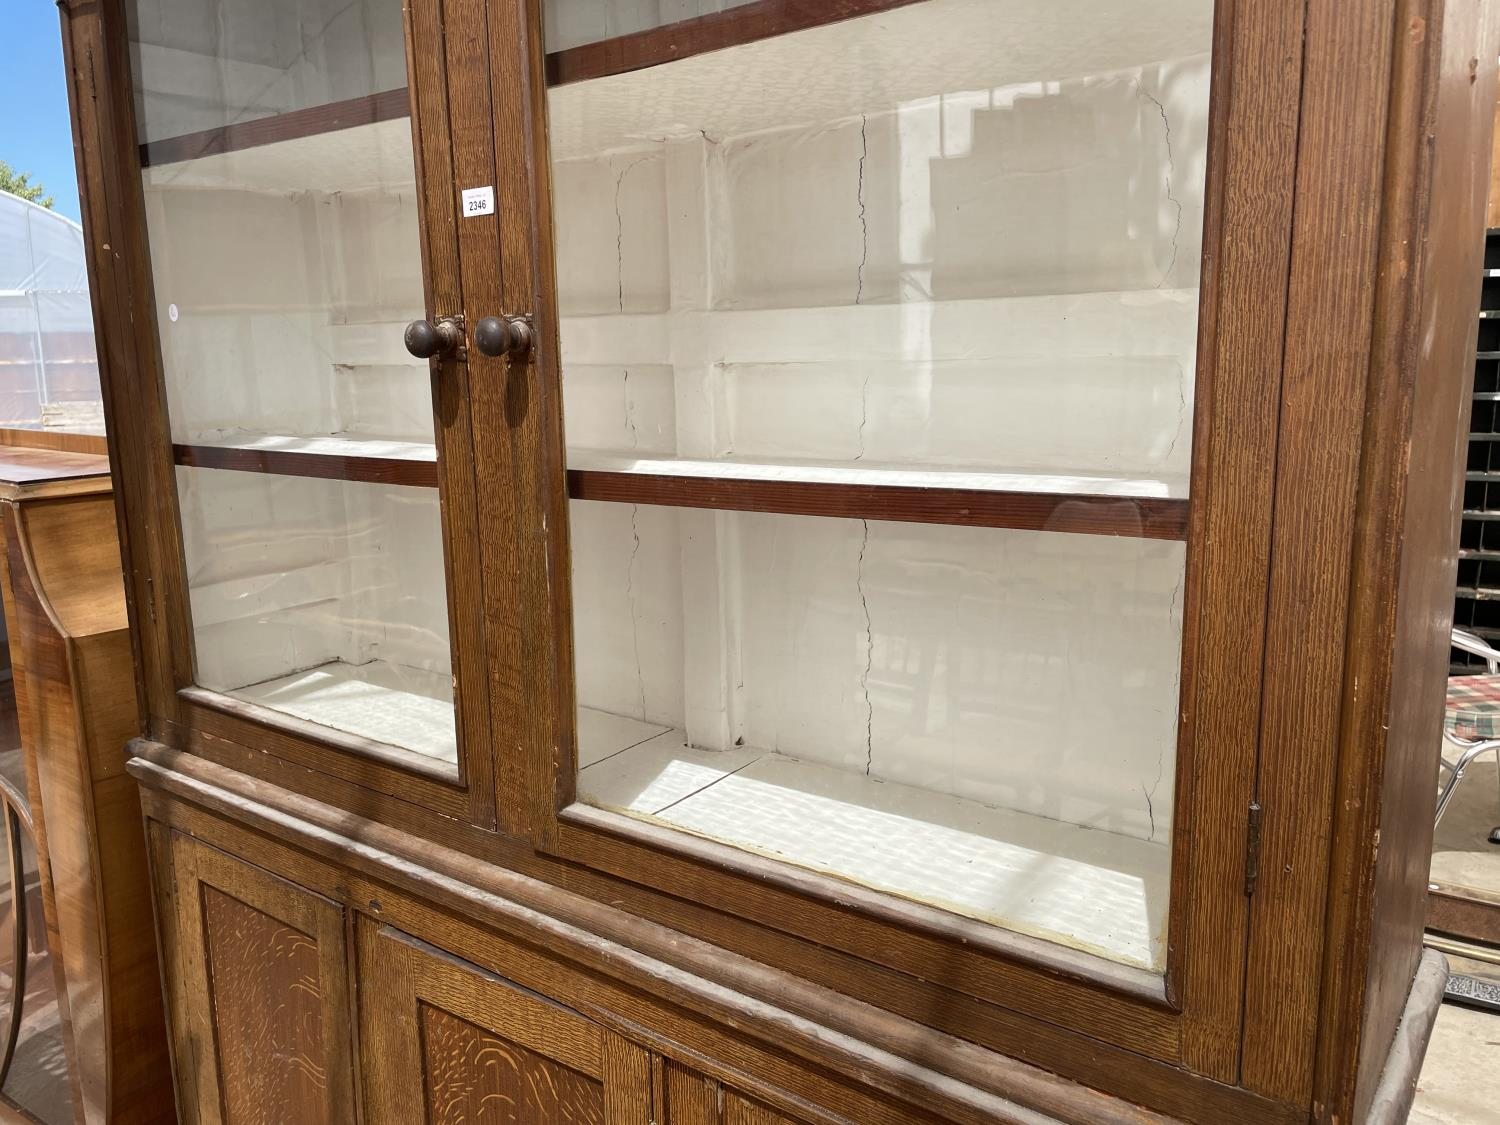 AN OAK BOOKCASE CABINET WITH TWO UPPER GLAZED DOORS AND THREE LOWER DOORS - Image 3 of 5